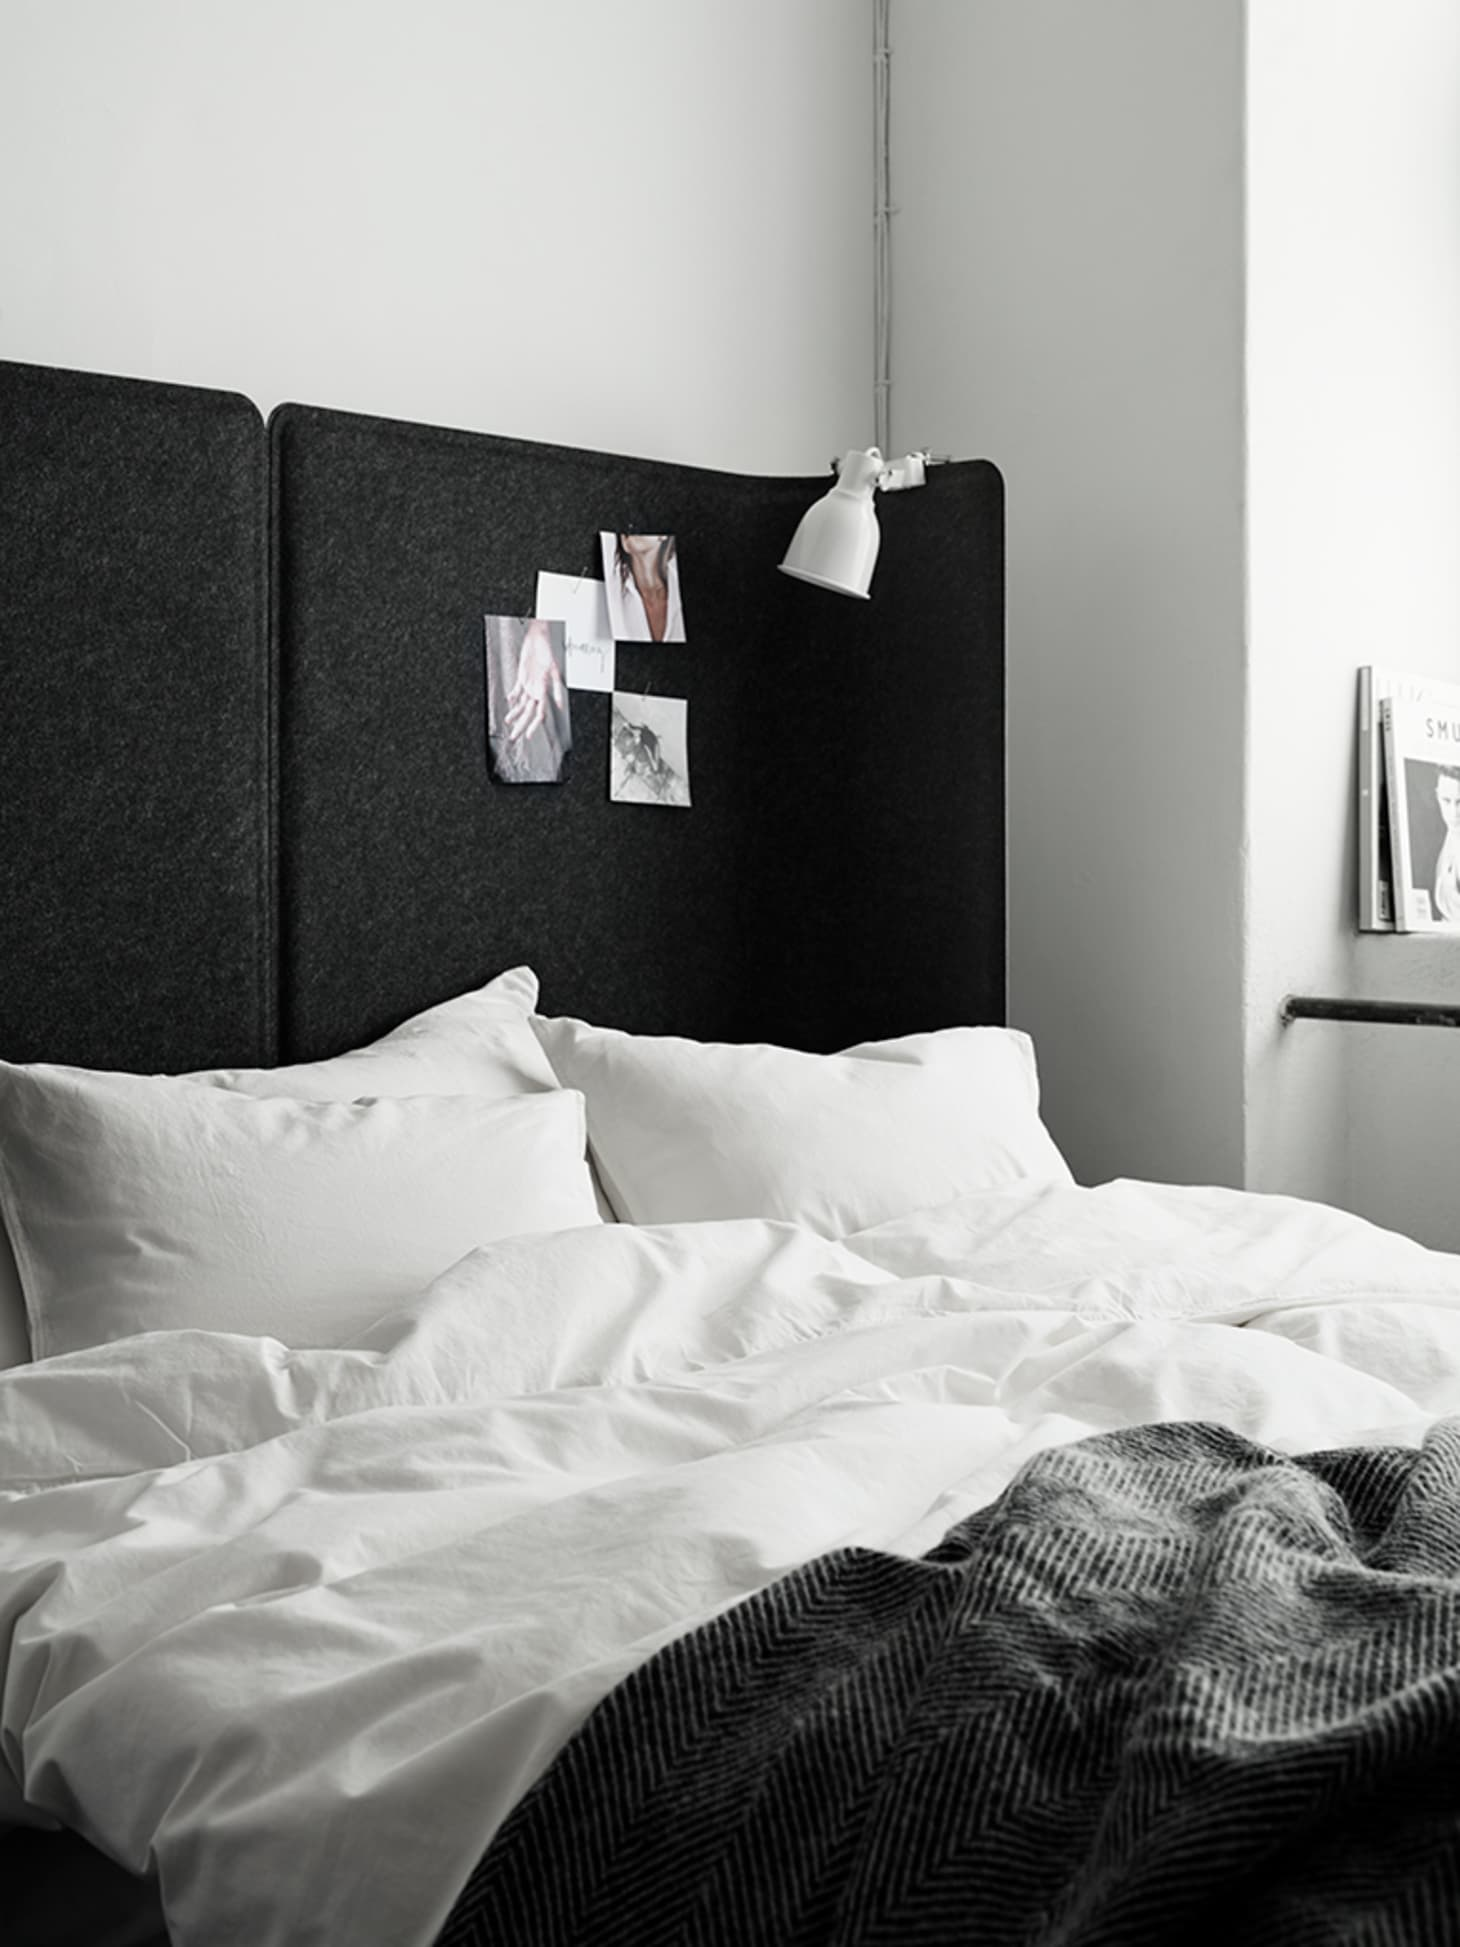 Ikea Bed Frame Hacks Diy Headboard Projects Apartment